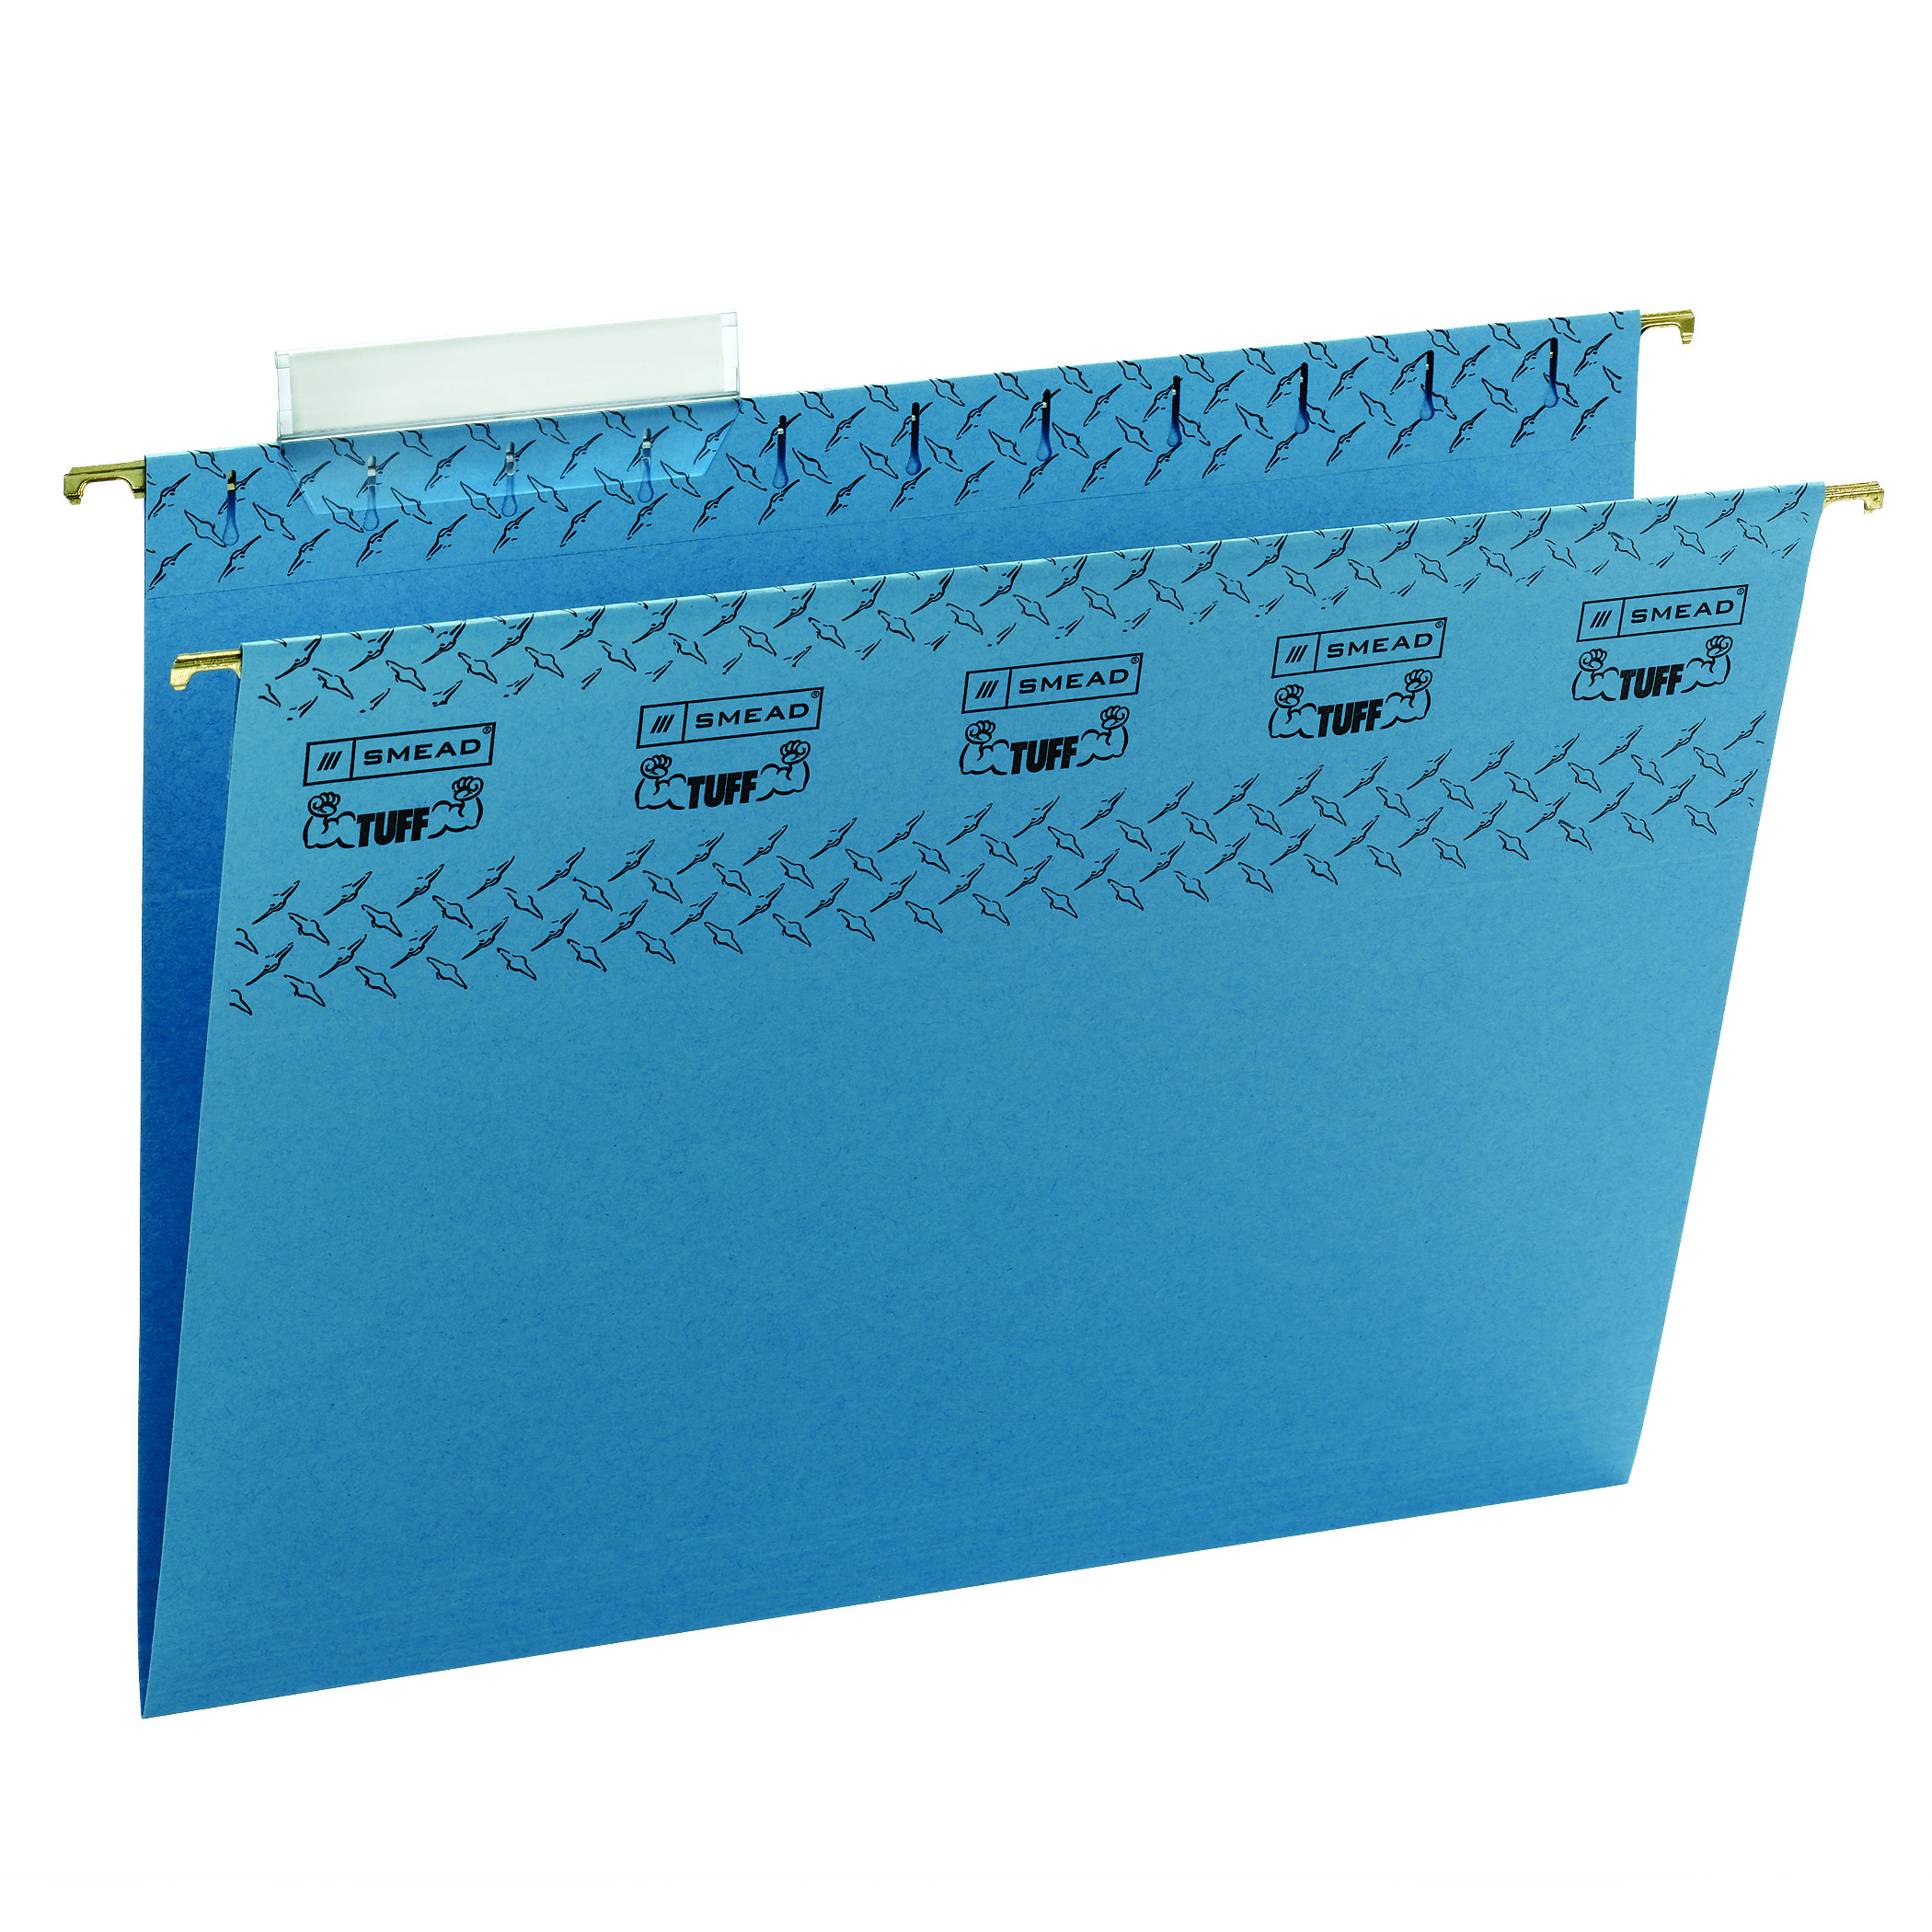 Smead® TUFF® Hanging File Folders With Easy Slide™ Tabs, Letter Size, Blue, Pack Of 18